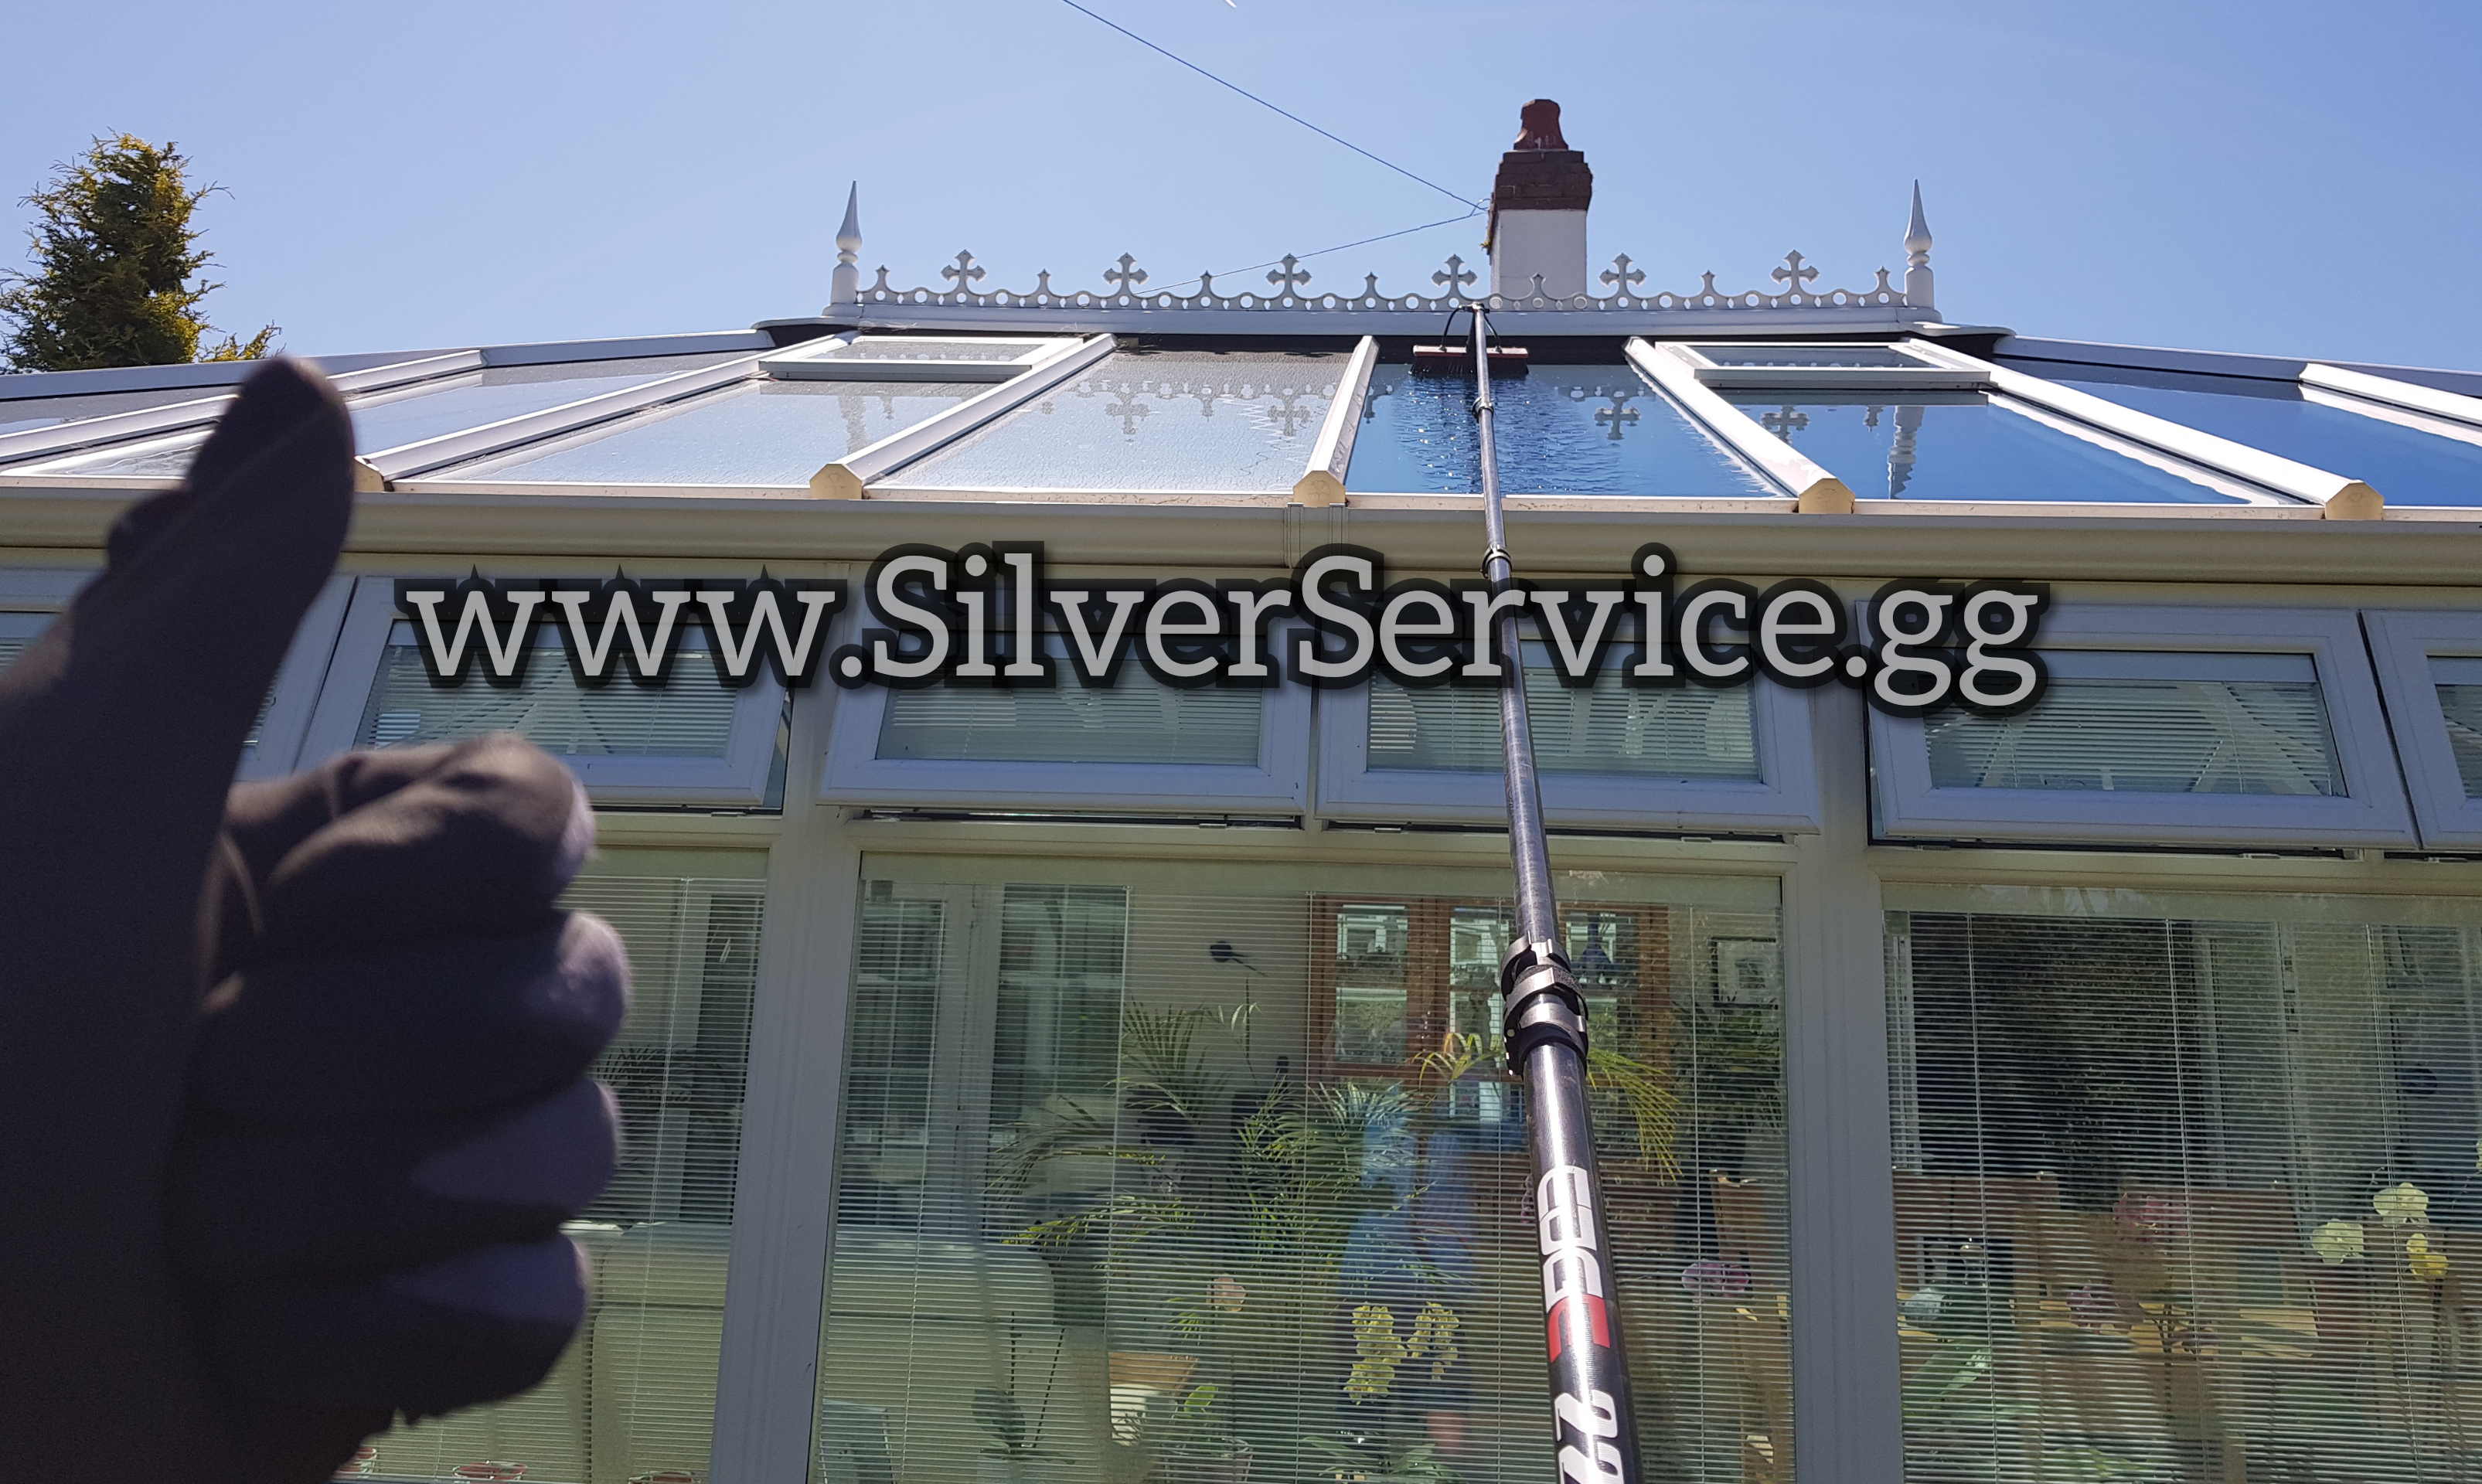 SILVER SERVICE WINDOW CLEANING